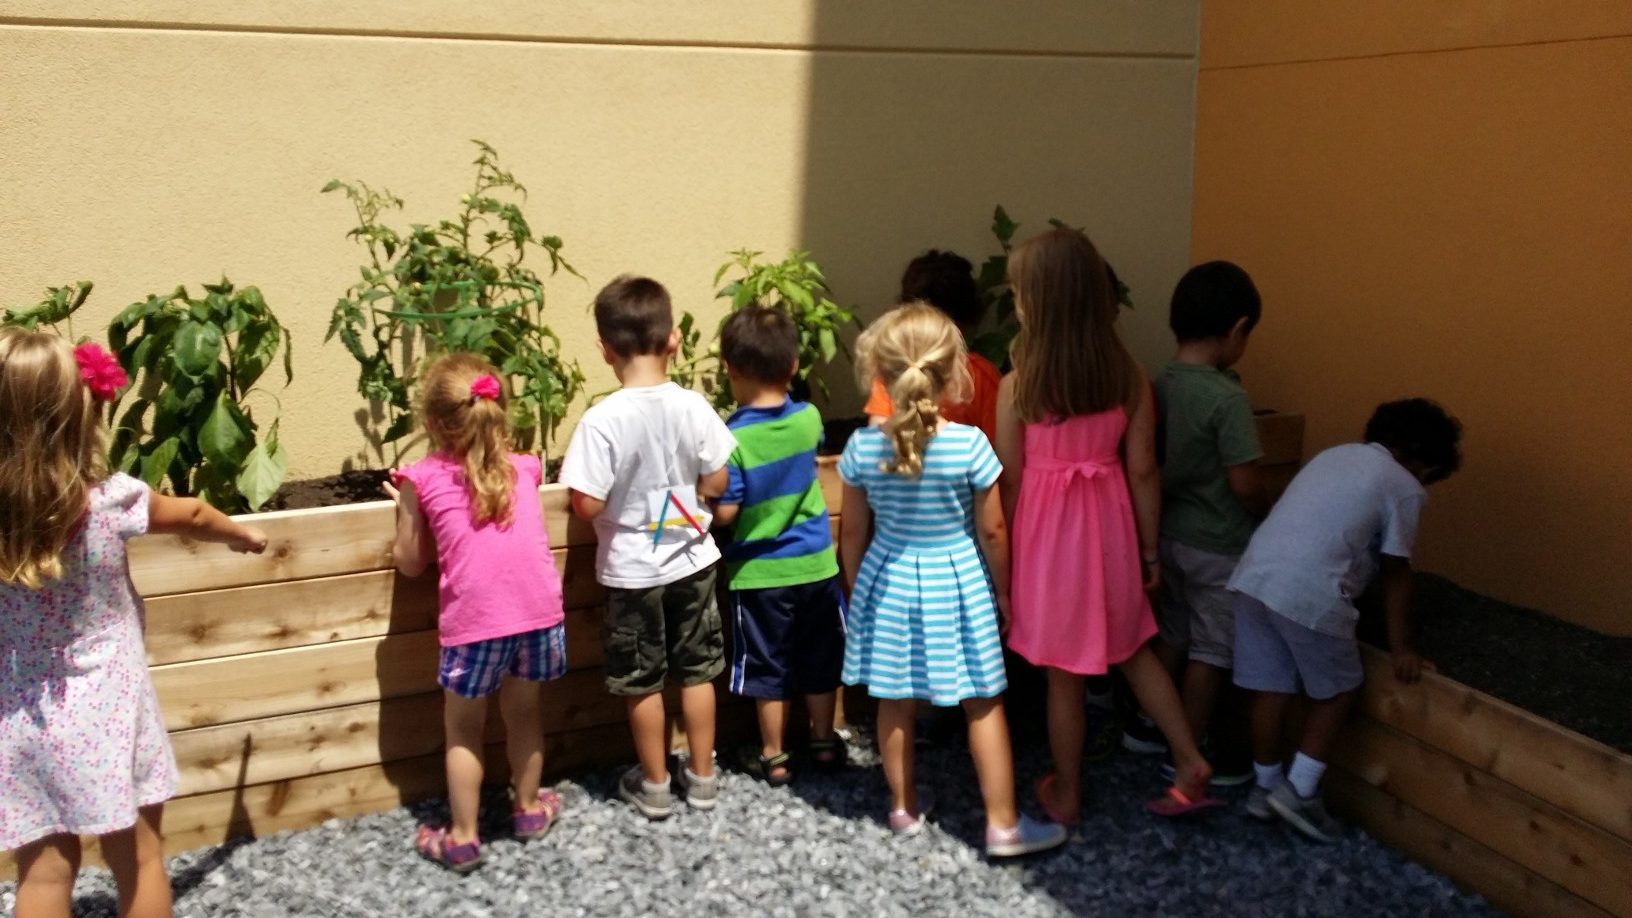 Children with tomato plants during our Gardening program